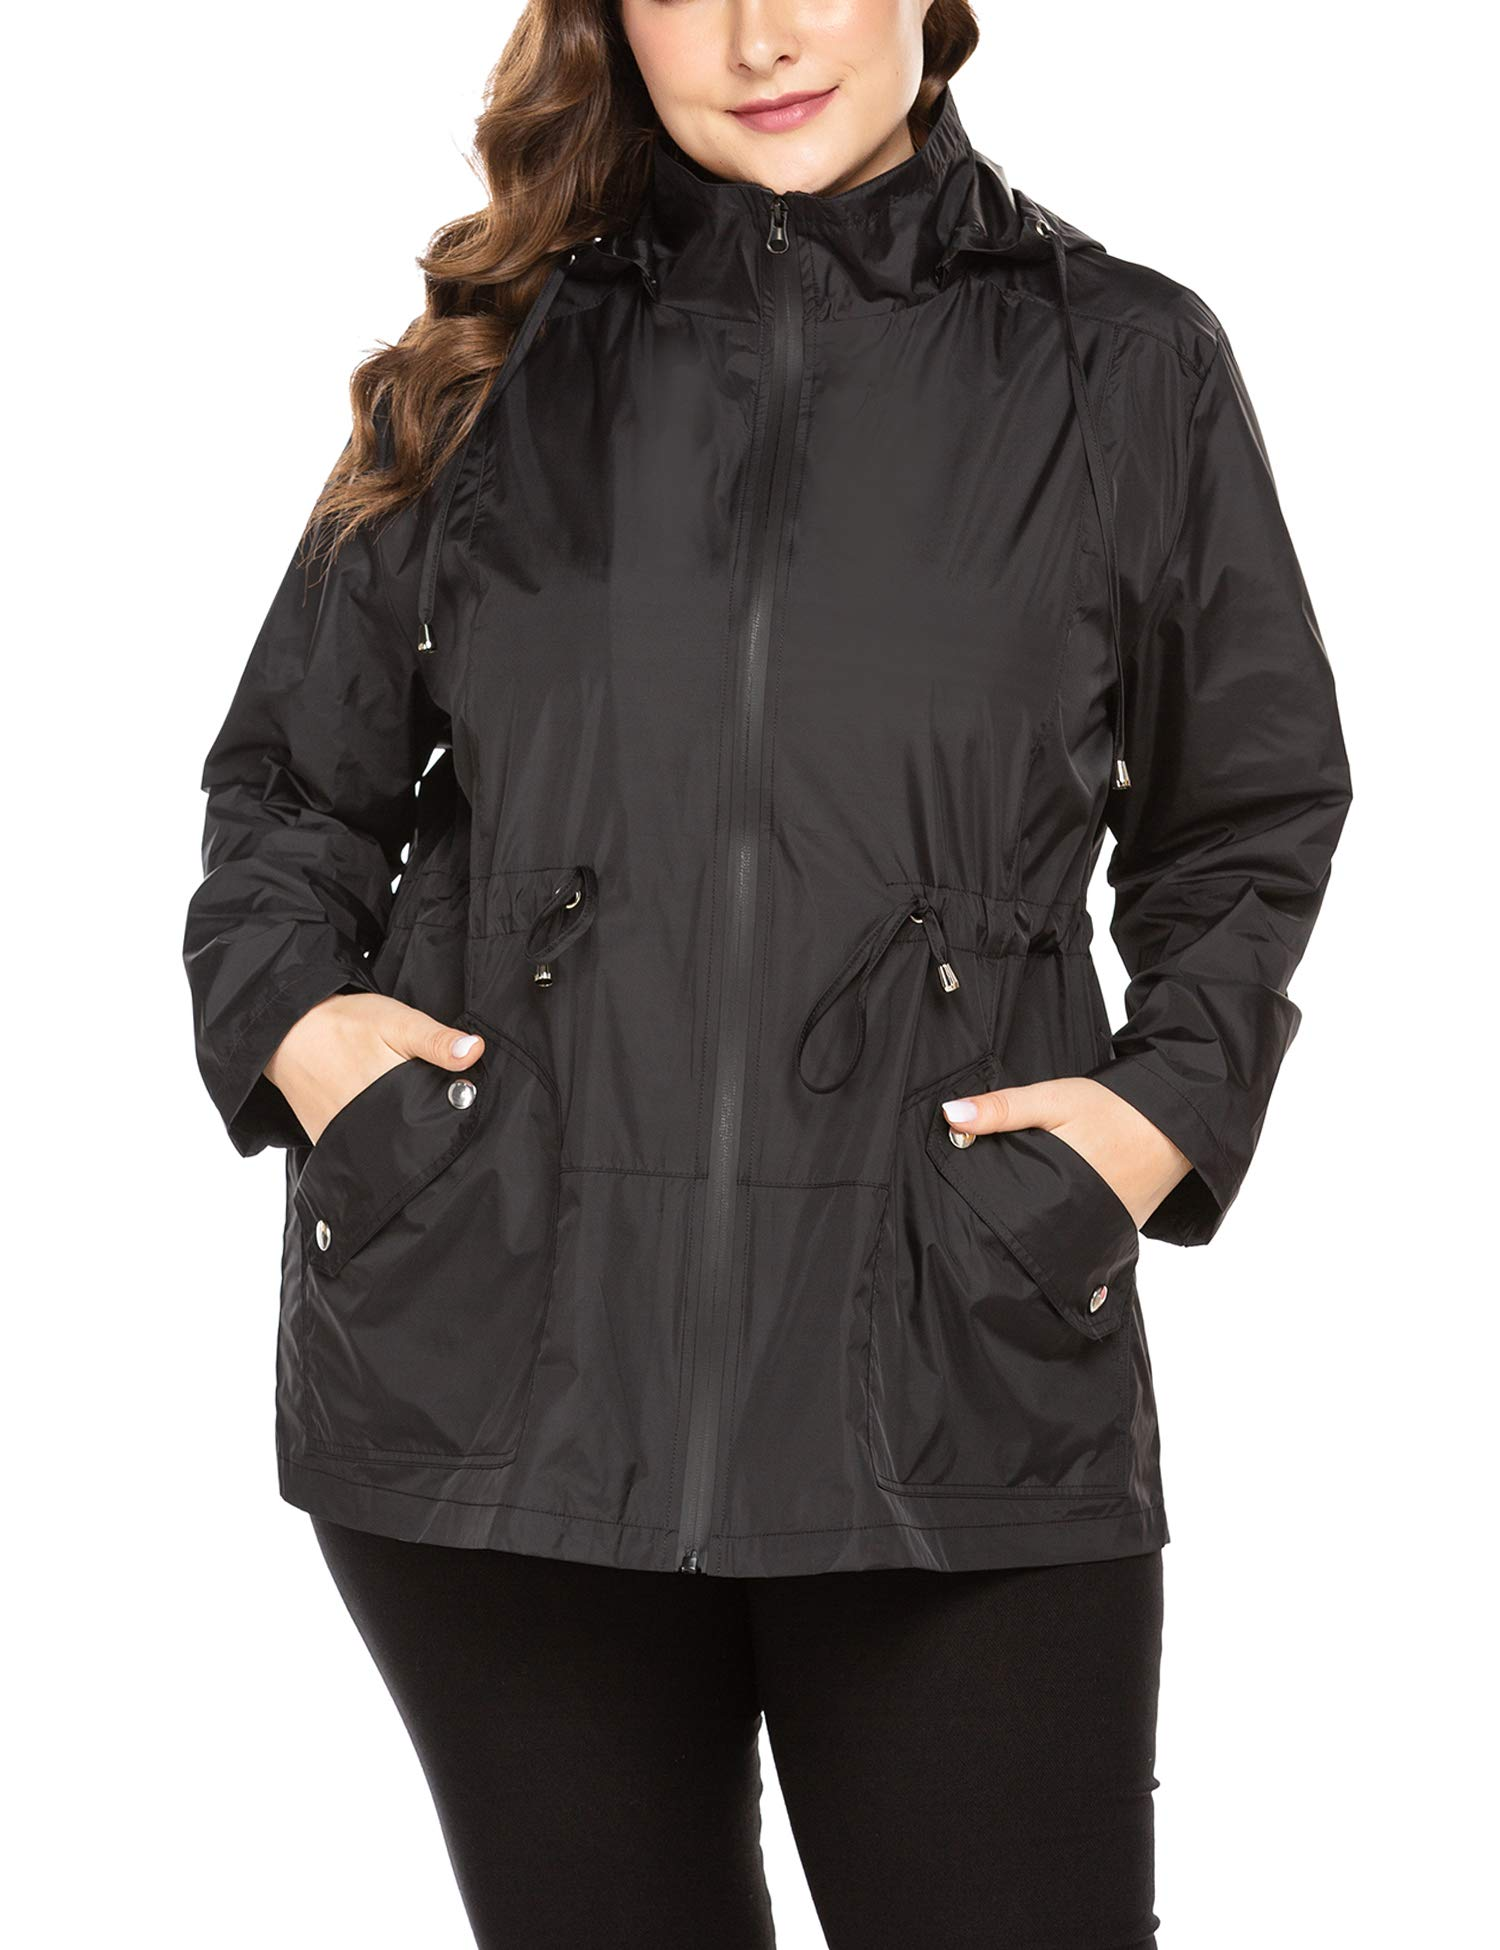 IN'VOLAND Women's Plus Size Rain Jacket Waterproof Hooded Windbreaker with Drawstring